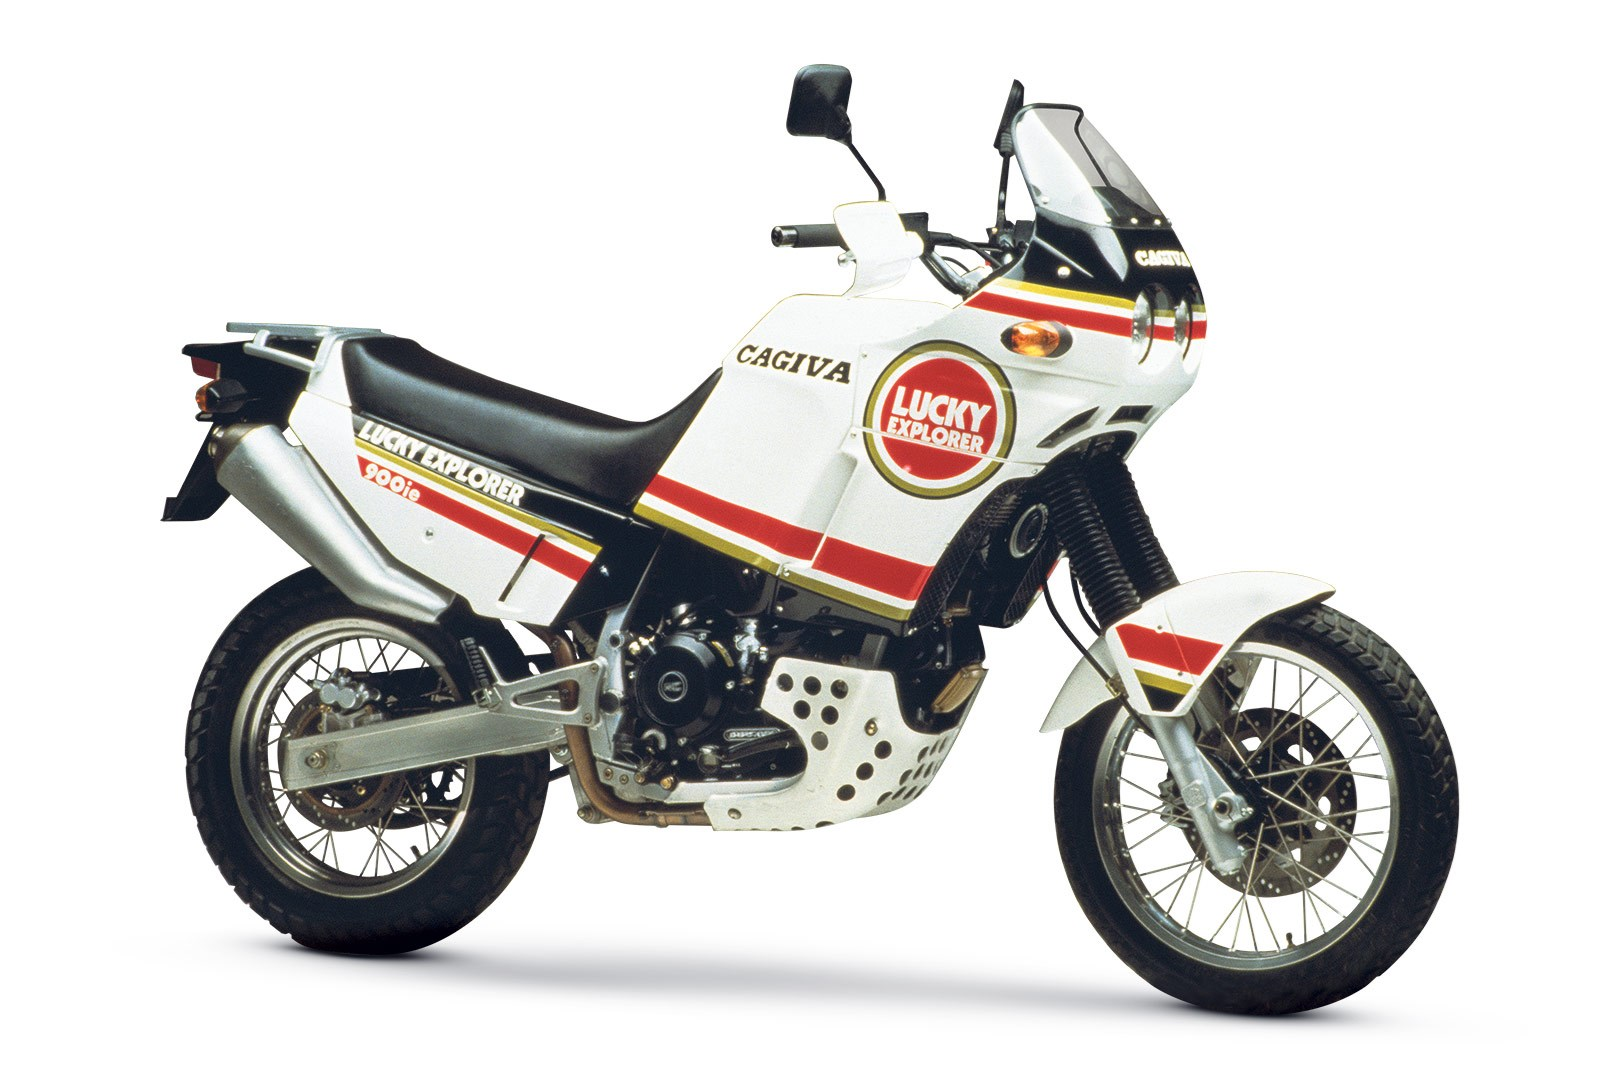 Cagiva Grand Canyon 900 IE 1999 images #67127